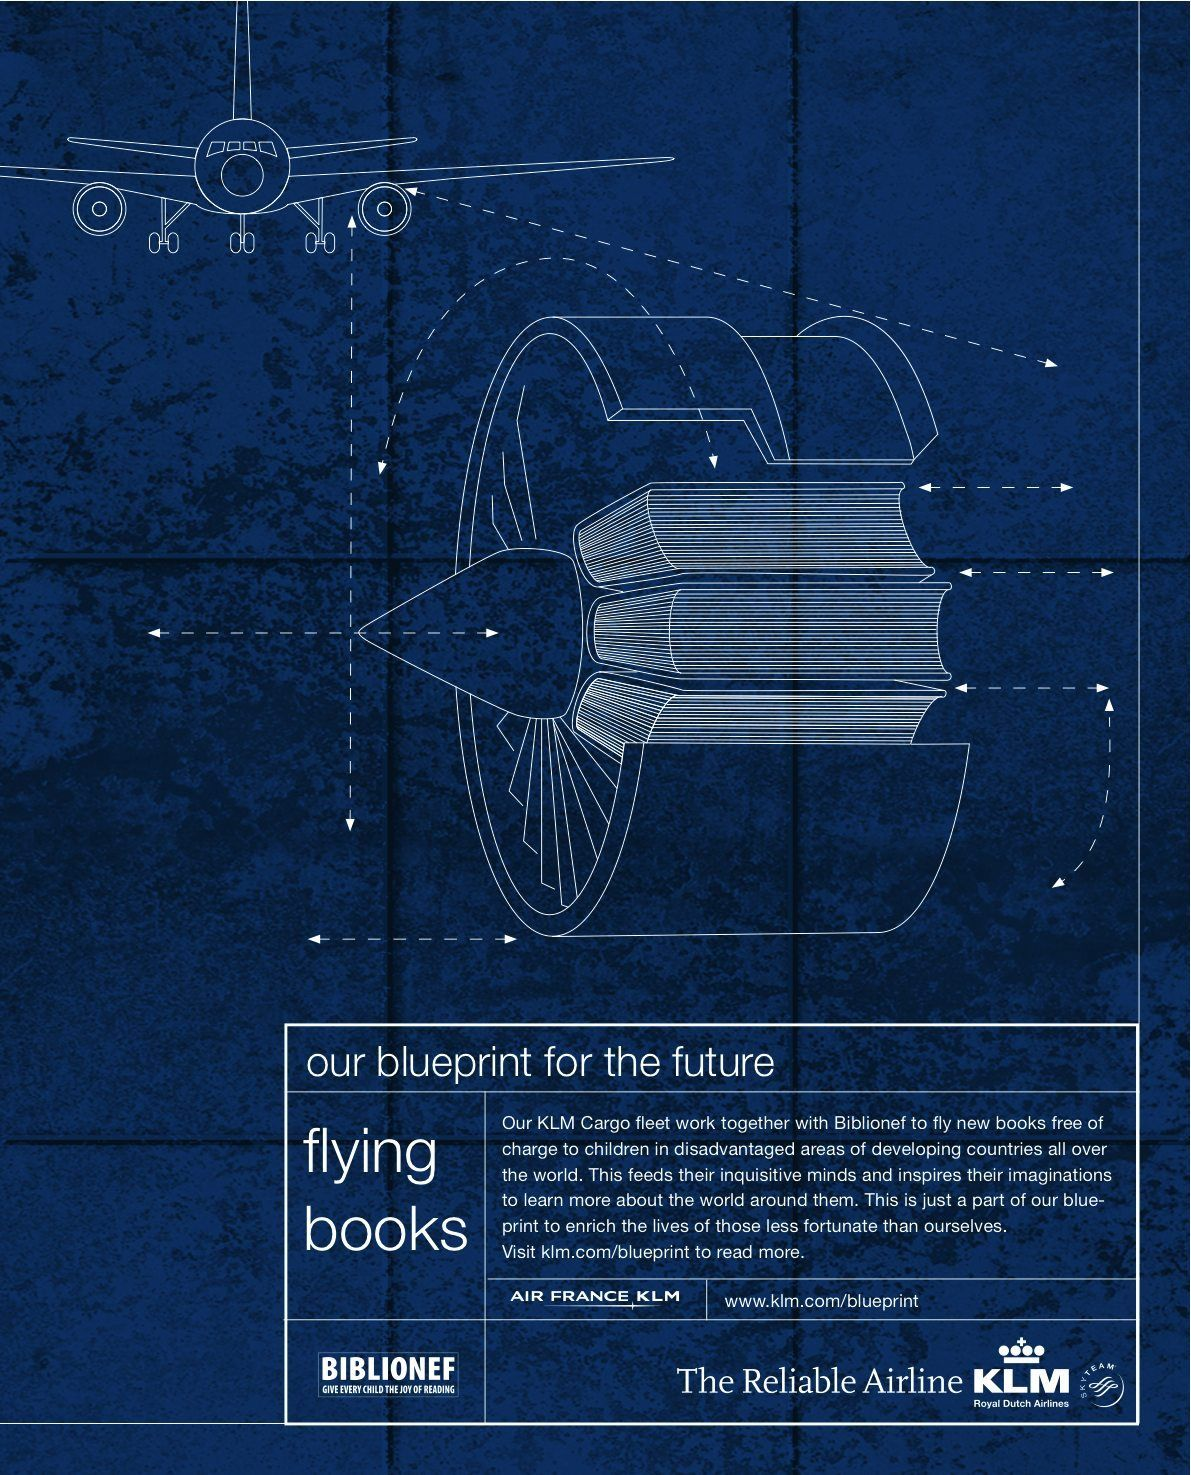 Blueprint poster technical drawingblueprint pinterest blueprint poster technical drawingstechnical malvernweather Images